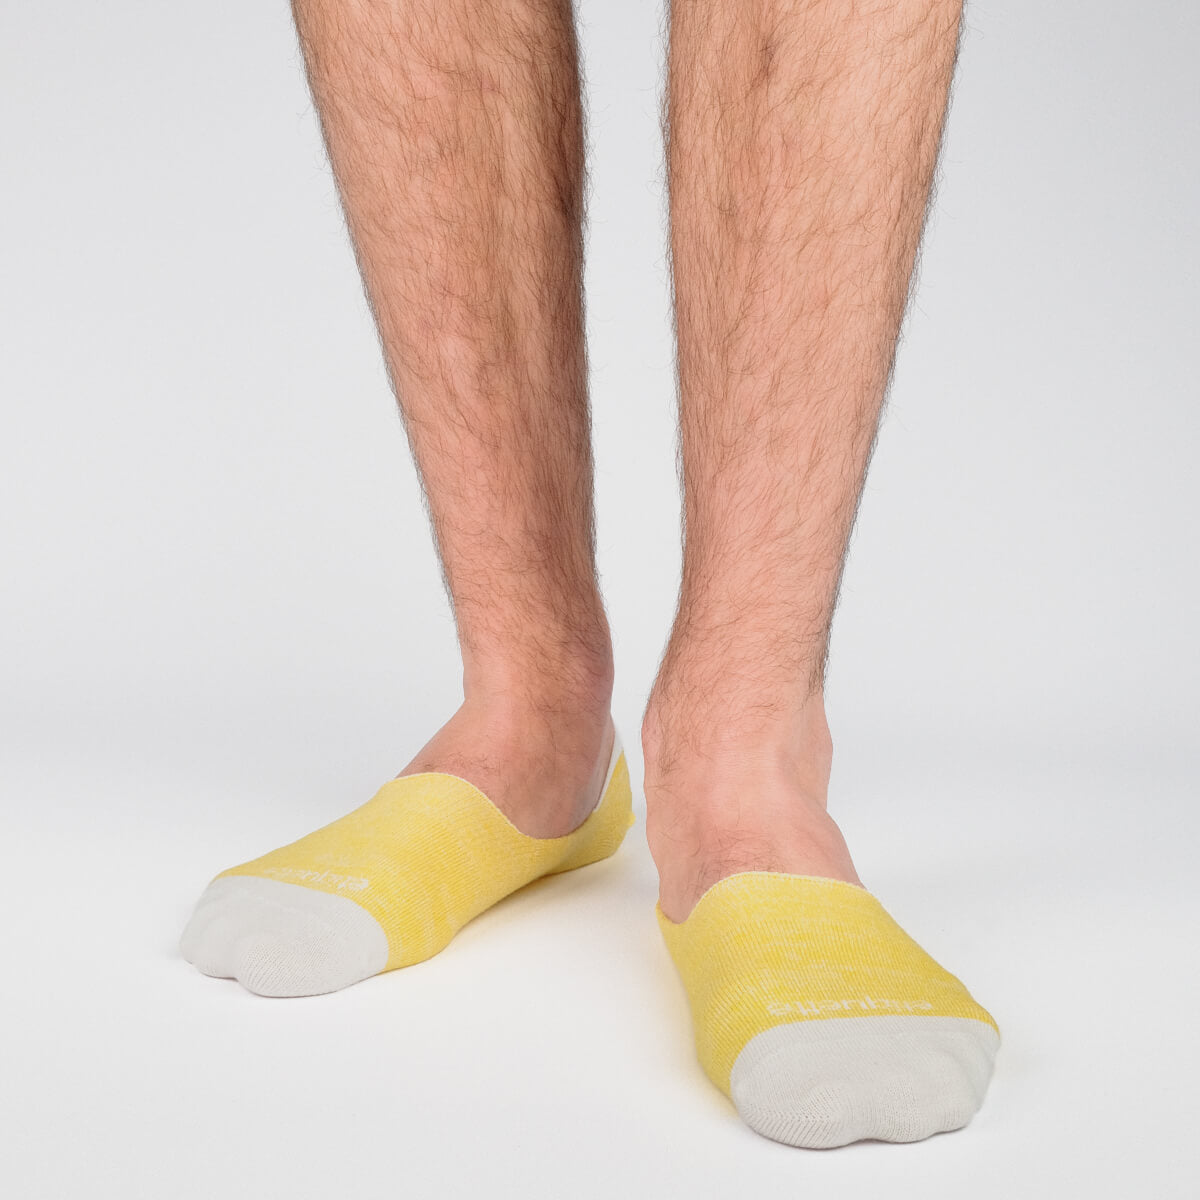 Mens Socks - Men's No Show Socks Roppongi - Yellow⎪Etiquette Clothiers